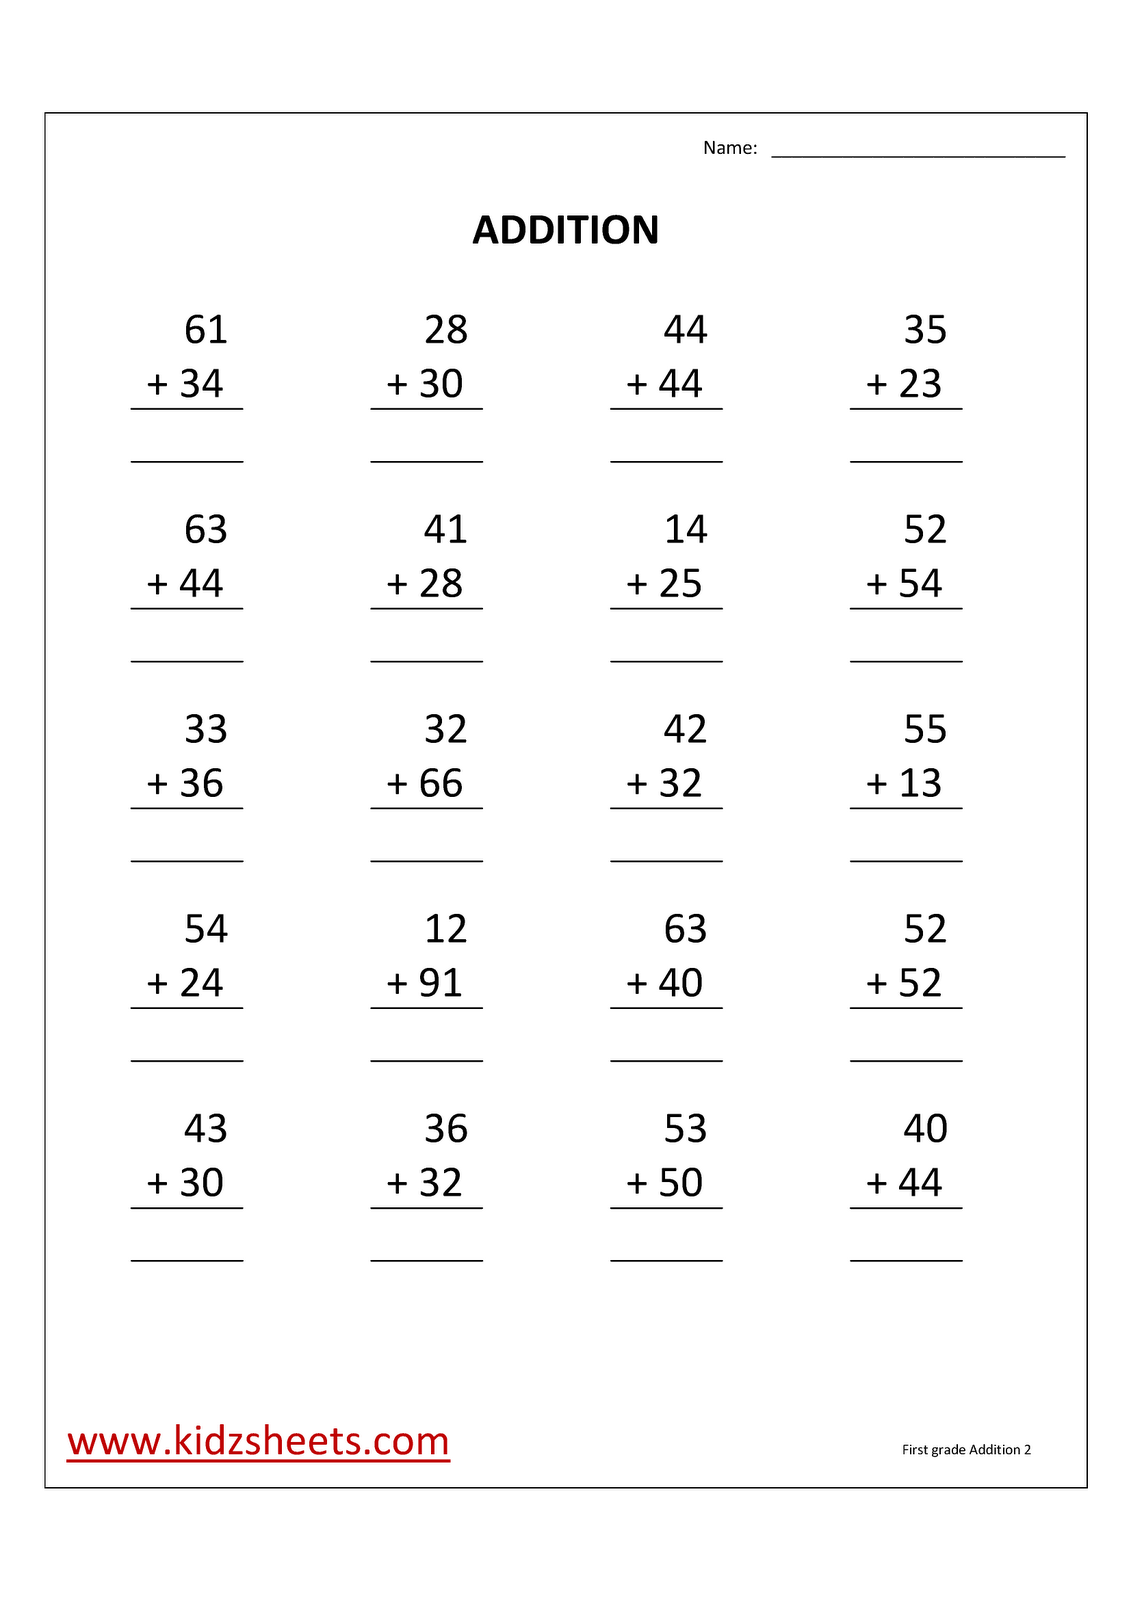 First Grade Addition Worksheets Kidz worksheets : first grade addition ...